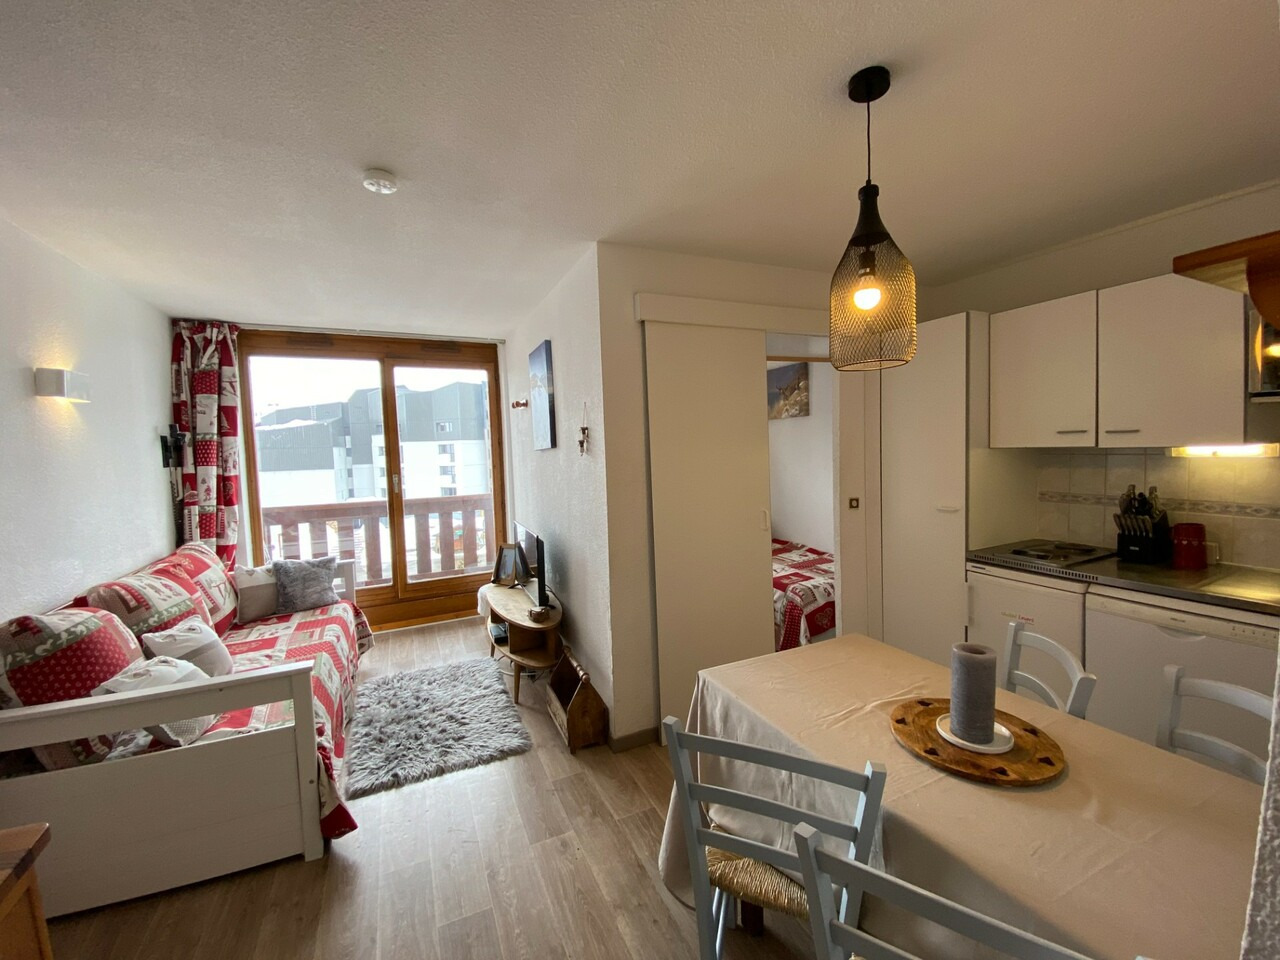 APARTMENT IN THE HEART OF THE RESORT Accommodation in Val Thorens